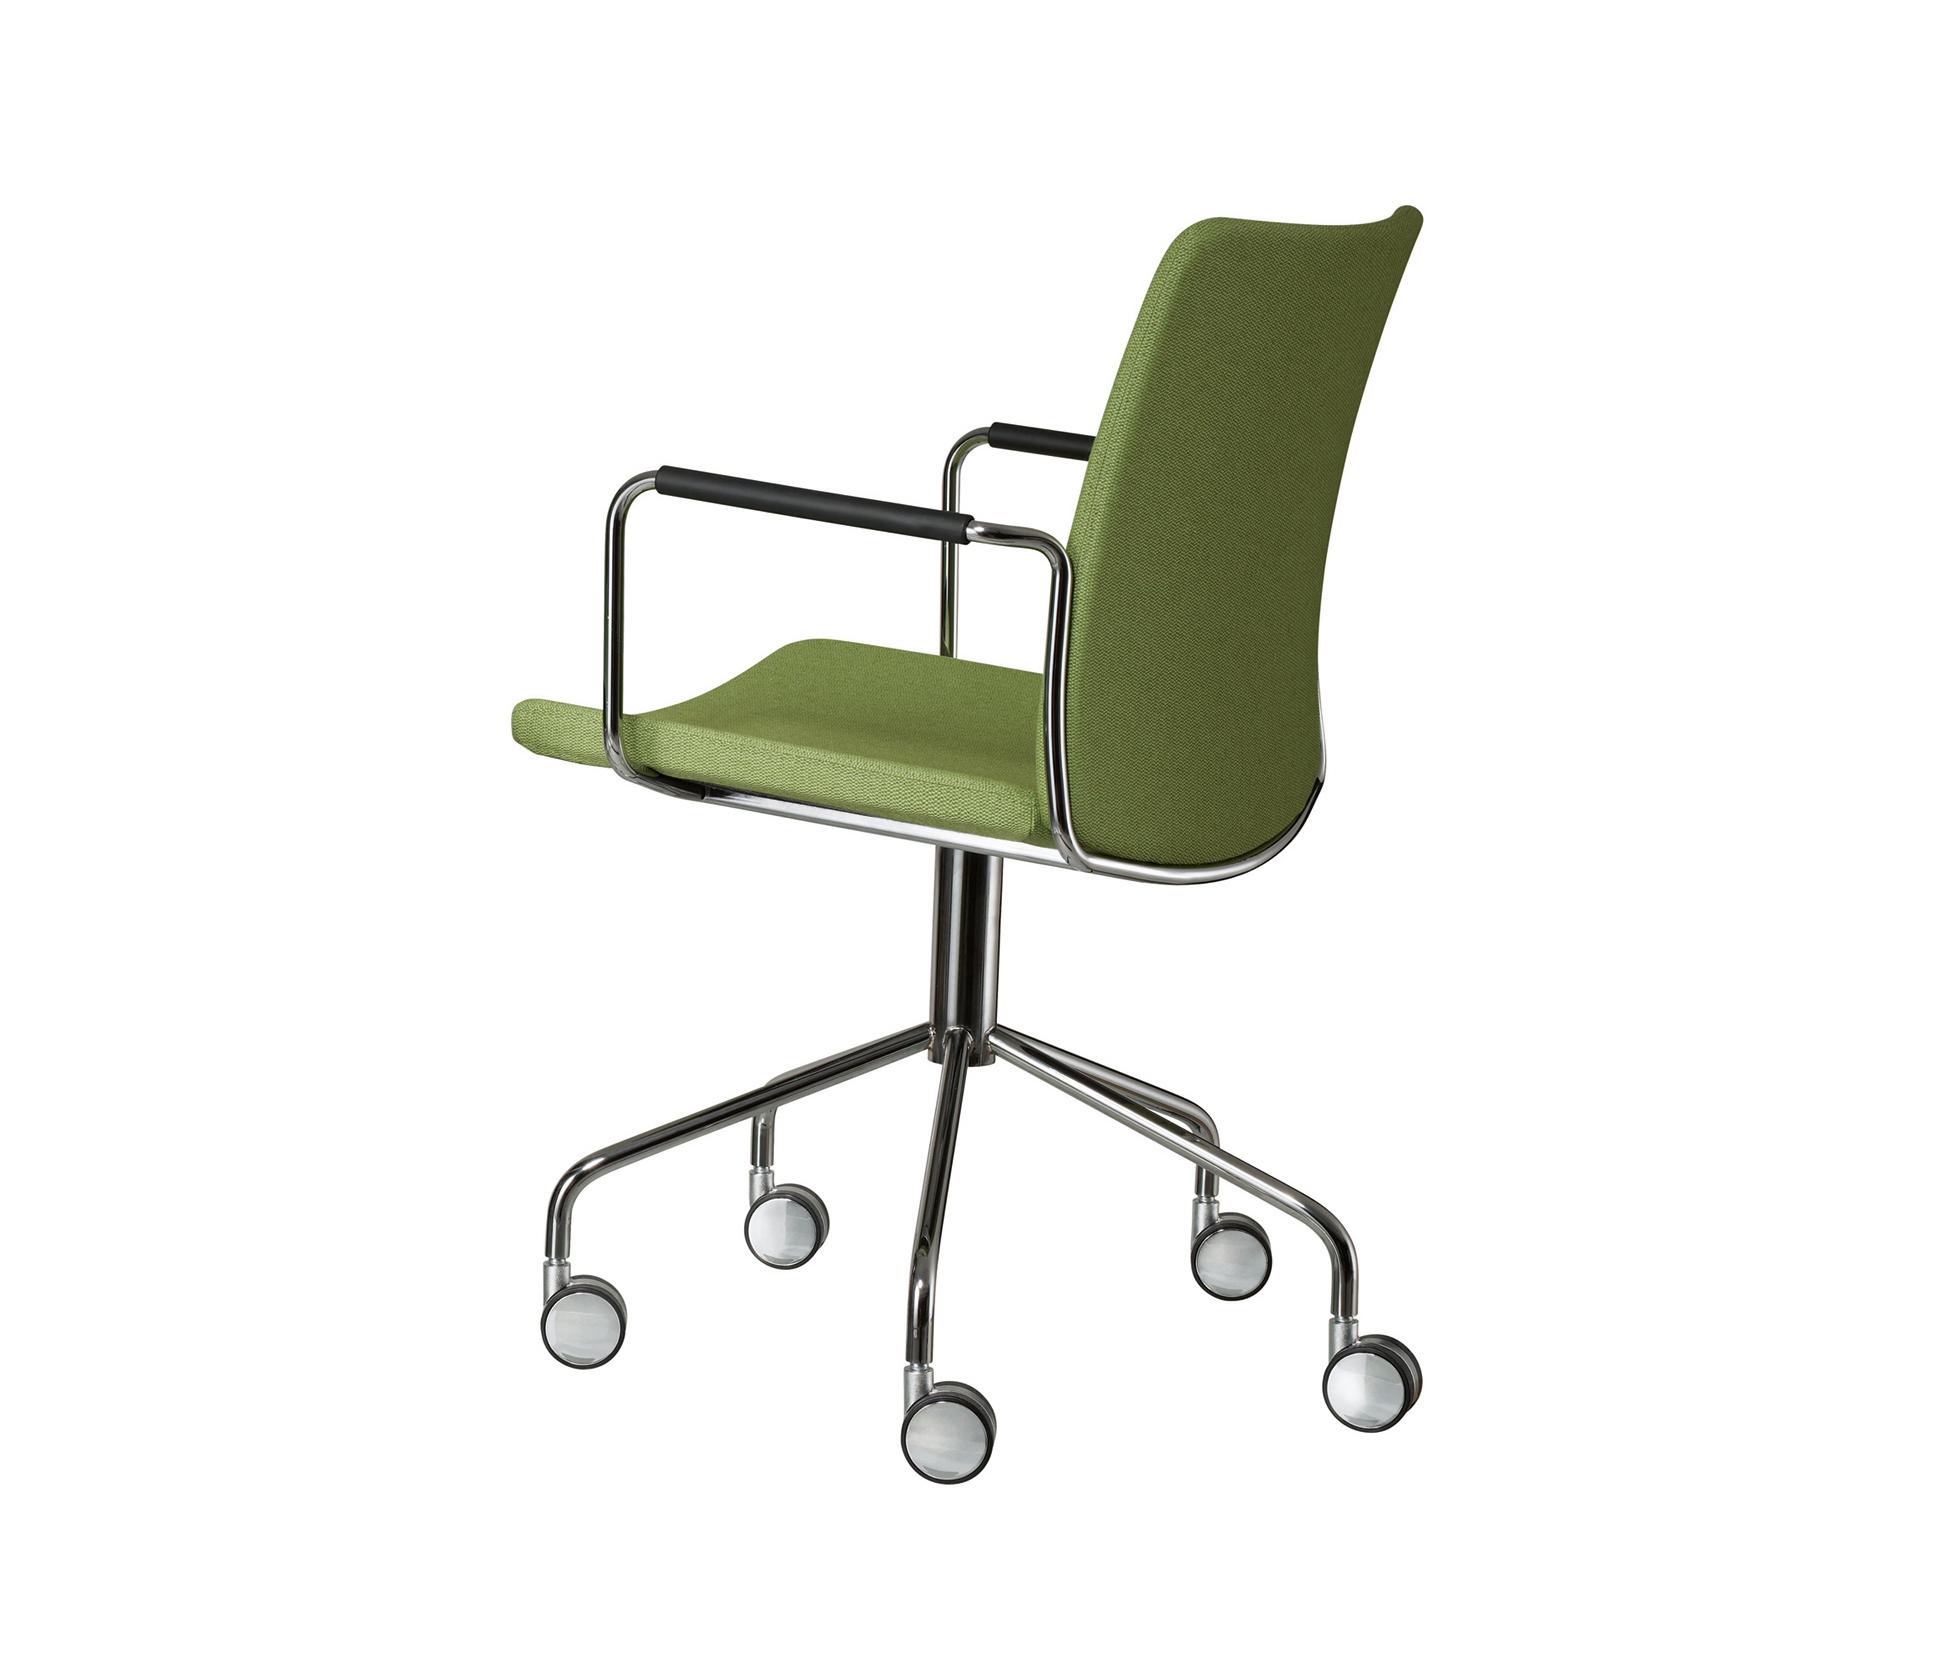 STELLA CHAIR Task chairs from Swedese Architonic